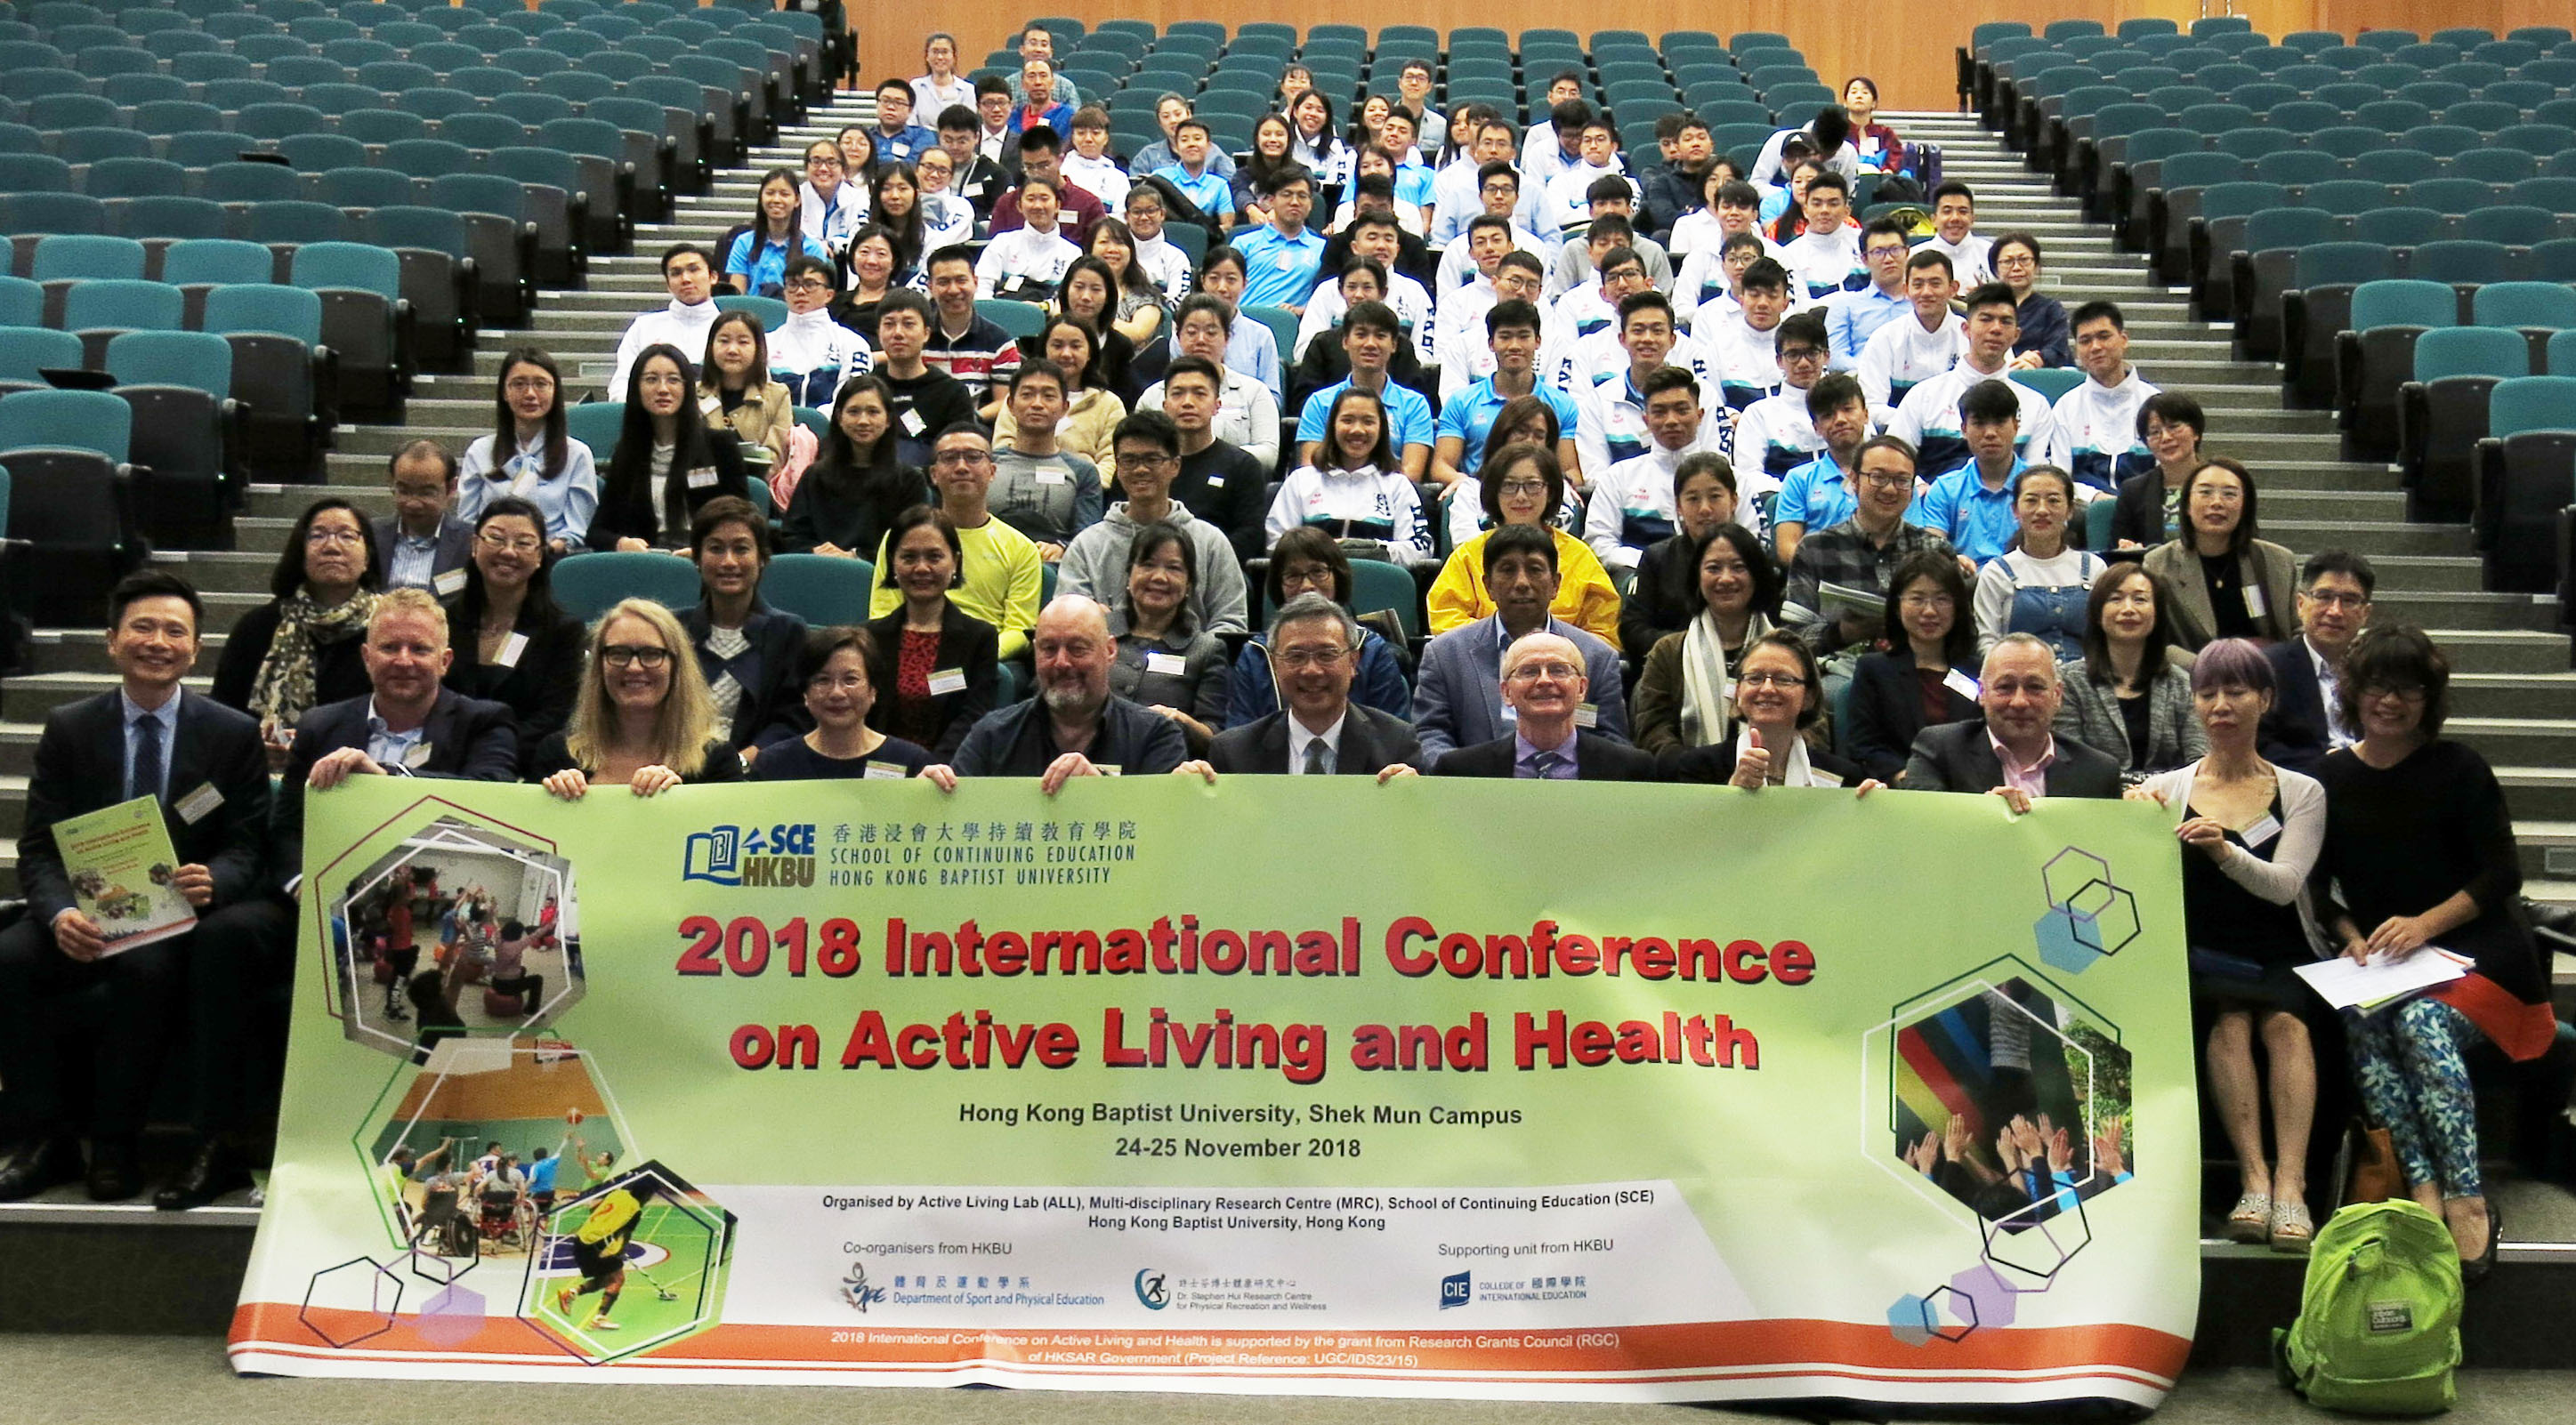 2018 International Conference on Active Living and Health image